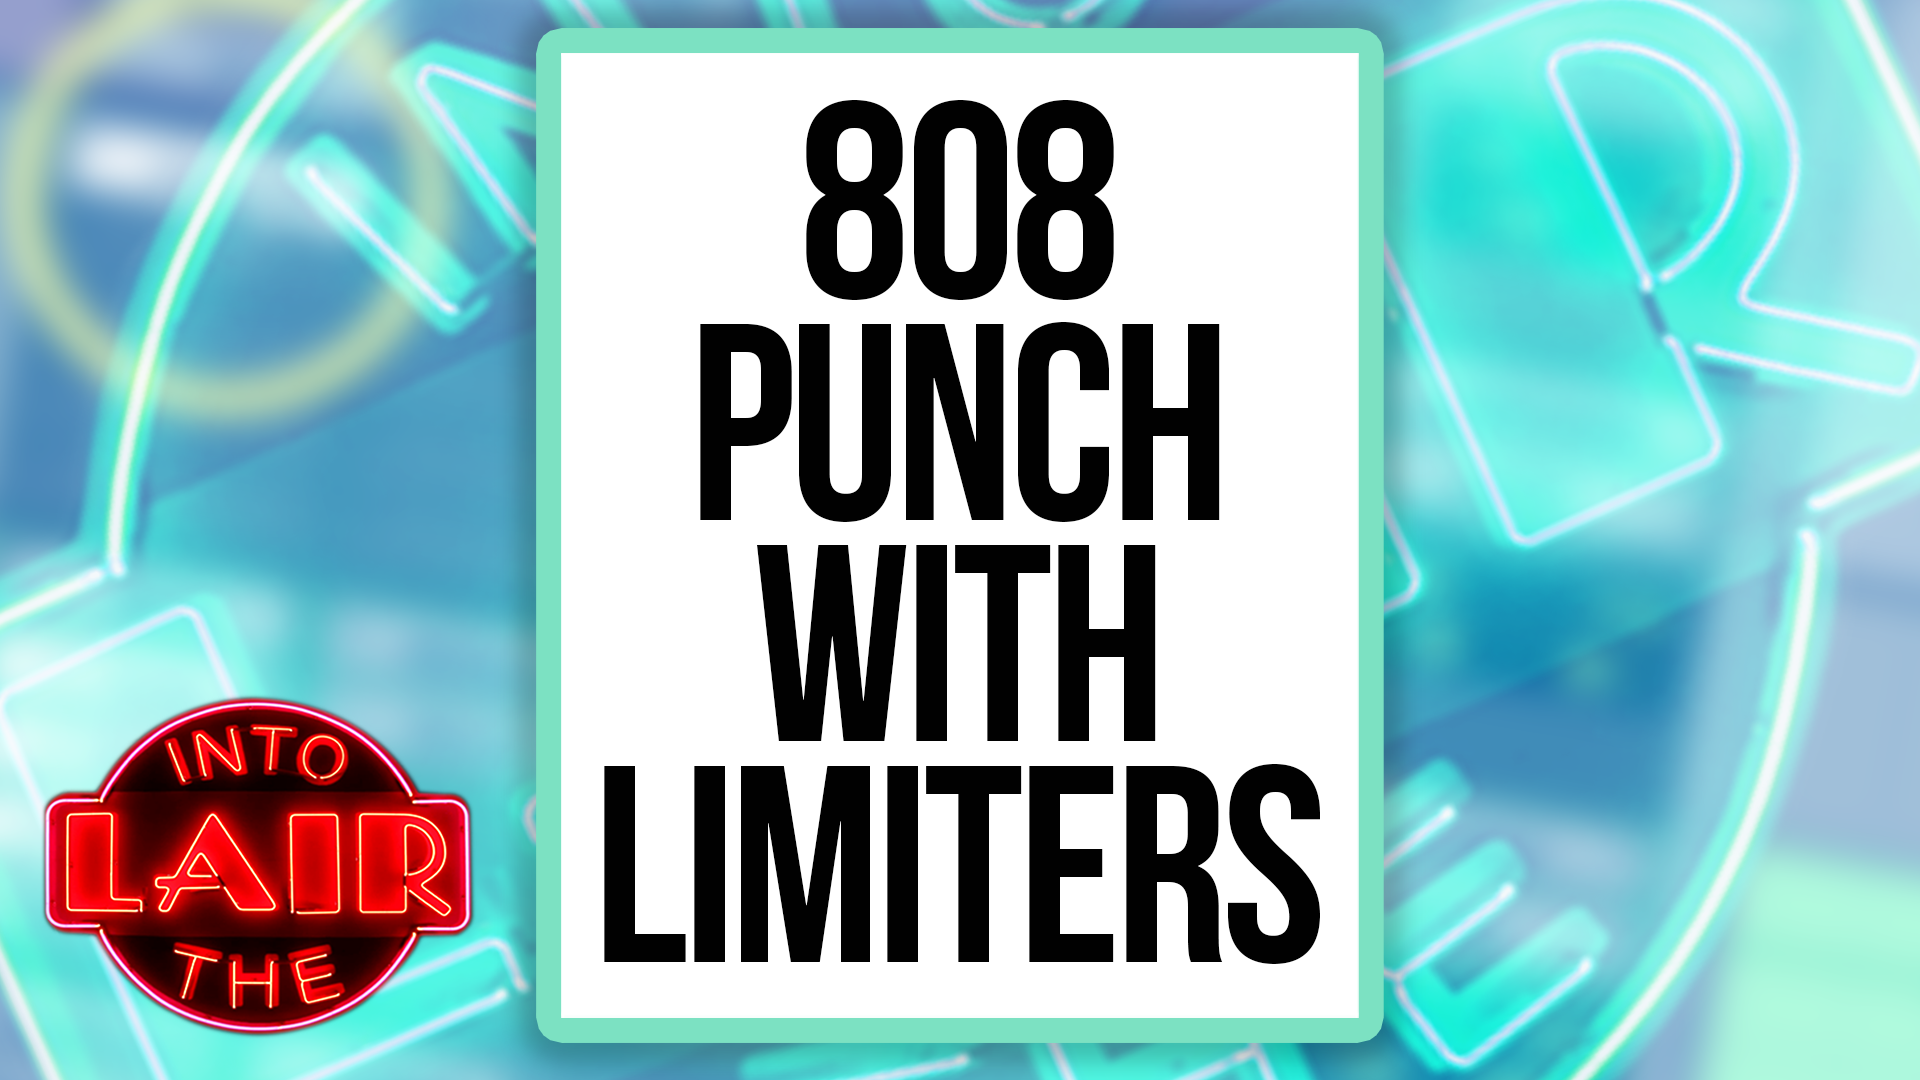 808 Punch With Limiters